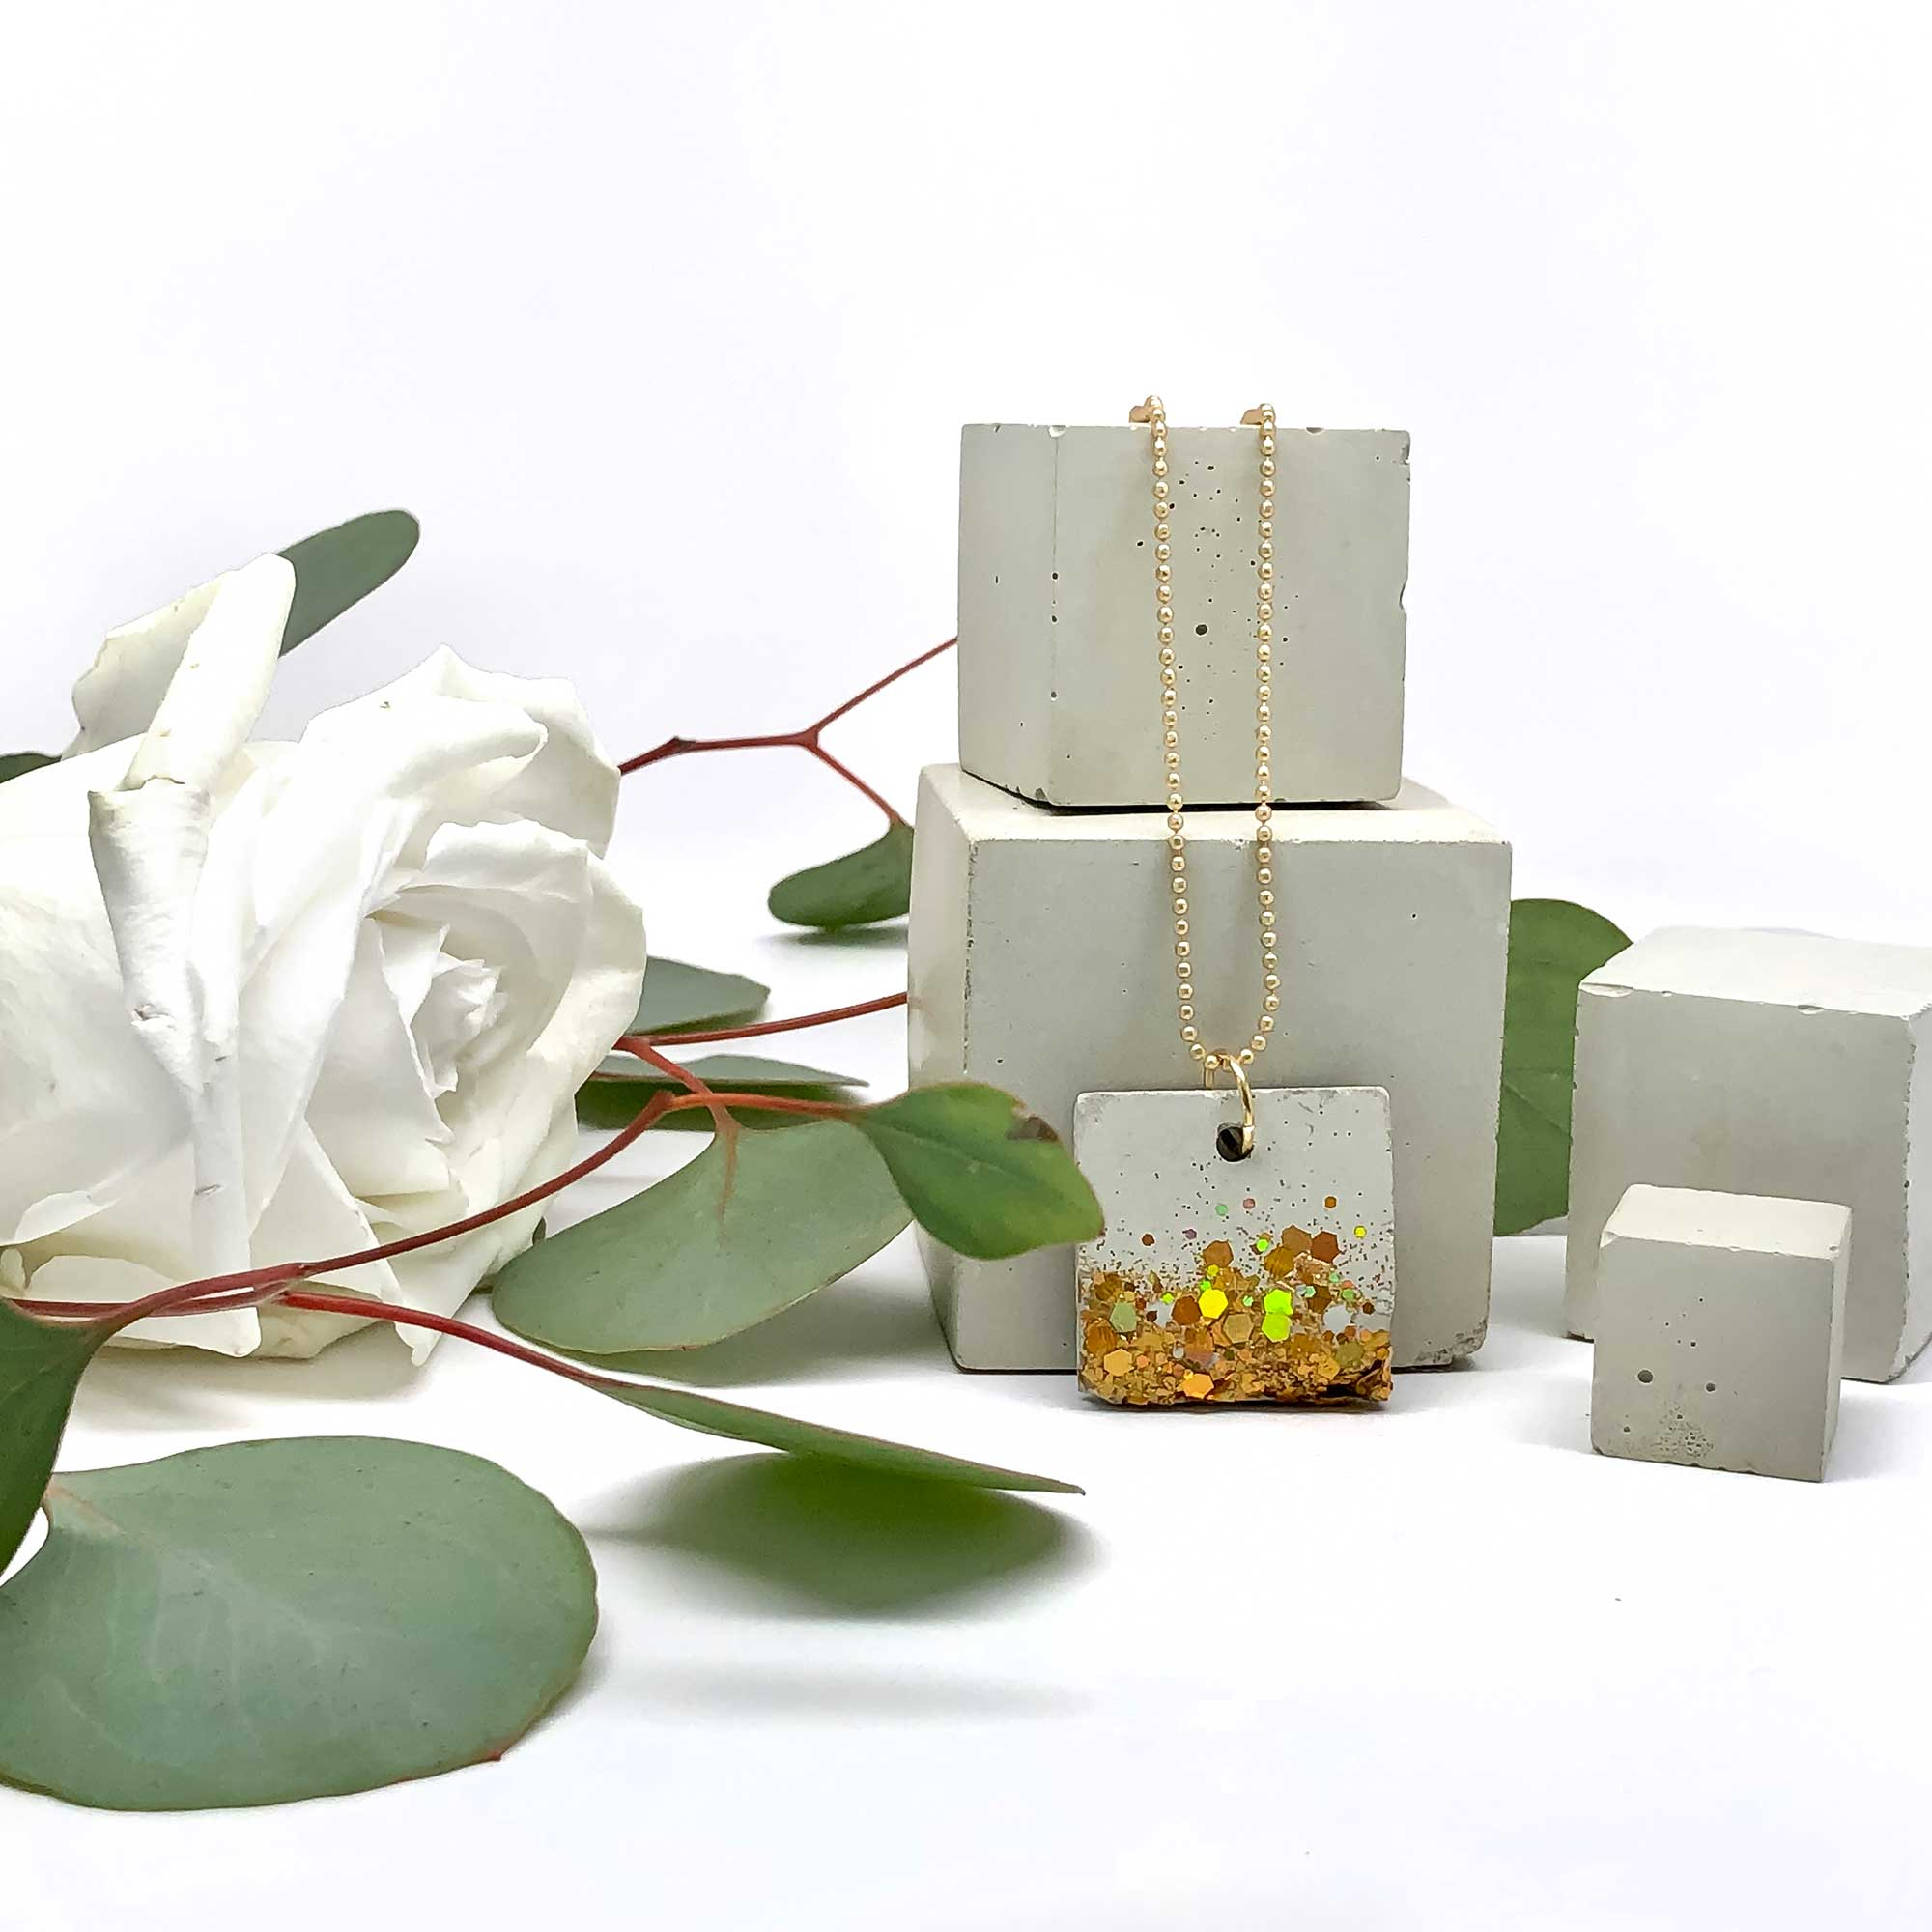 Shimmering Gold Embedded in Concrete Square Necklace